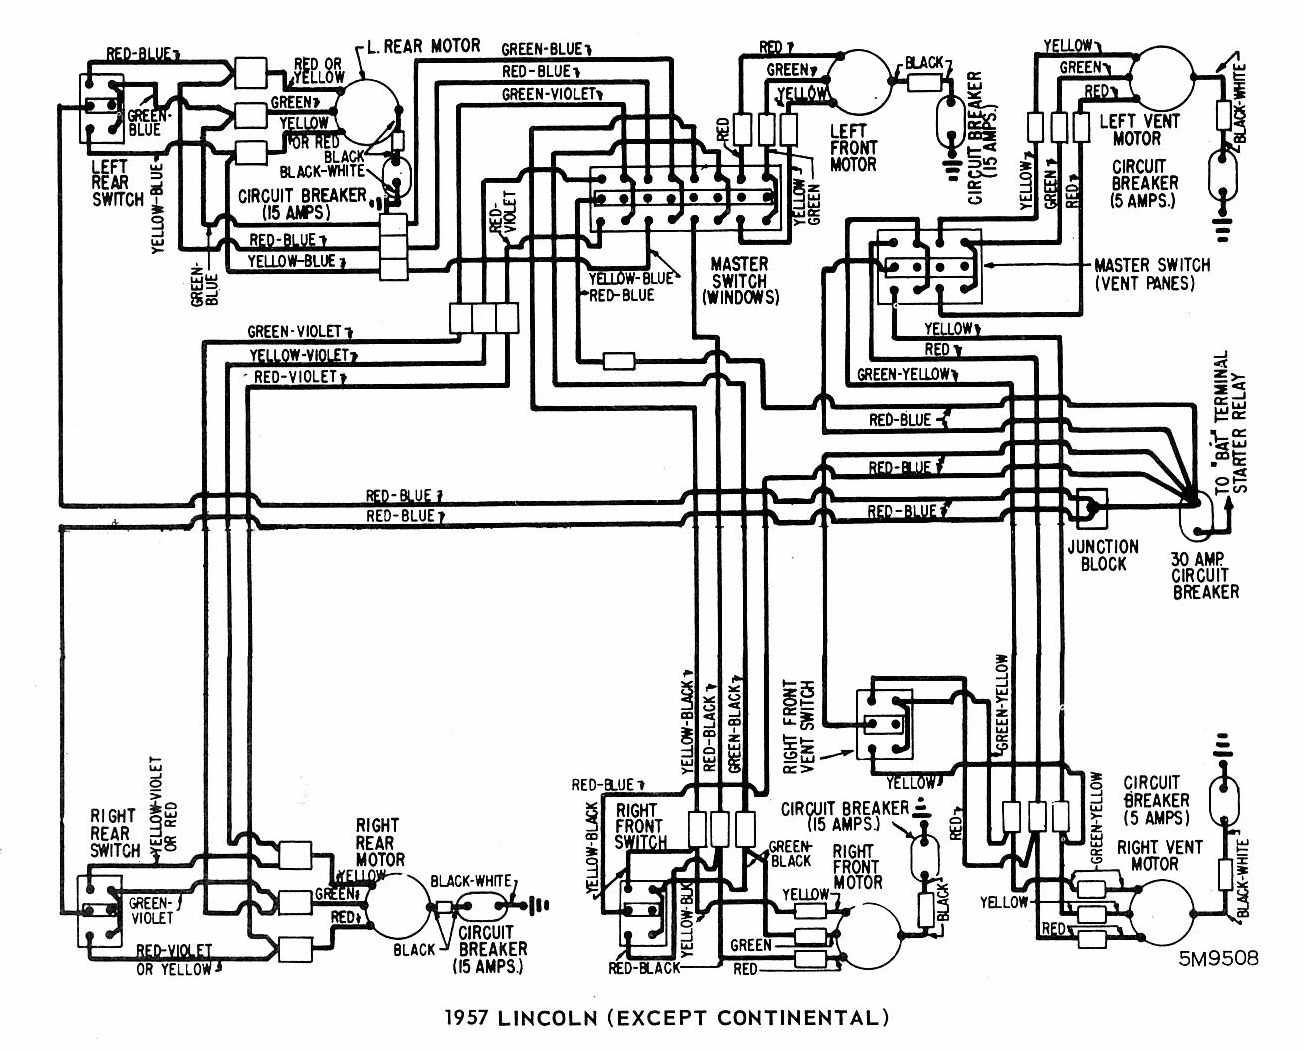 Lincoln Except Continental Windows Wiring Diagram on 1966 ford thunderbird power window wiring diagram